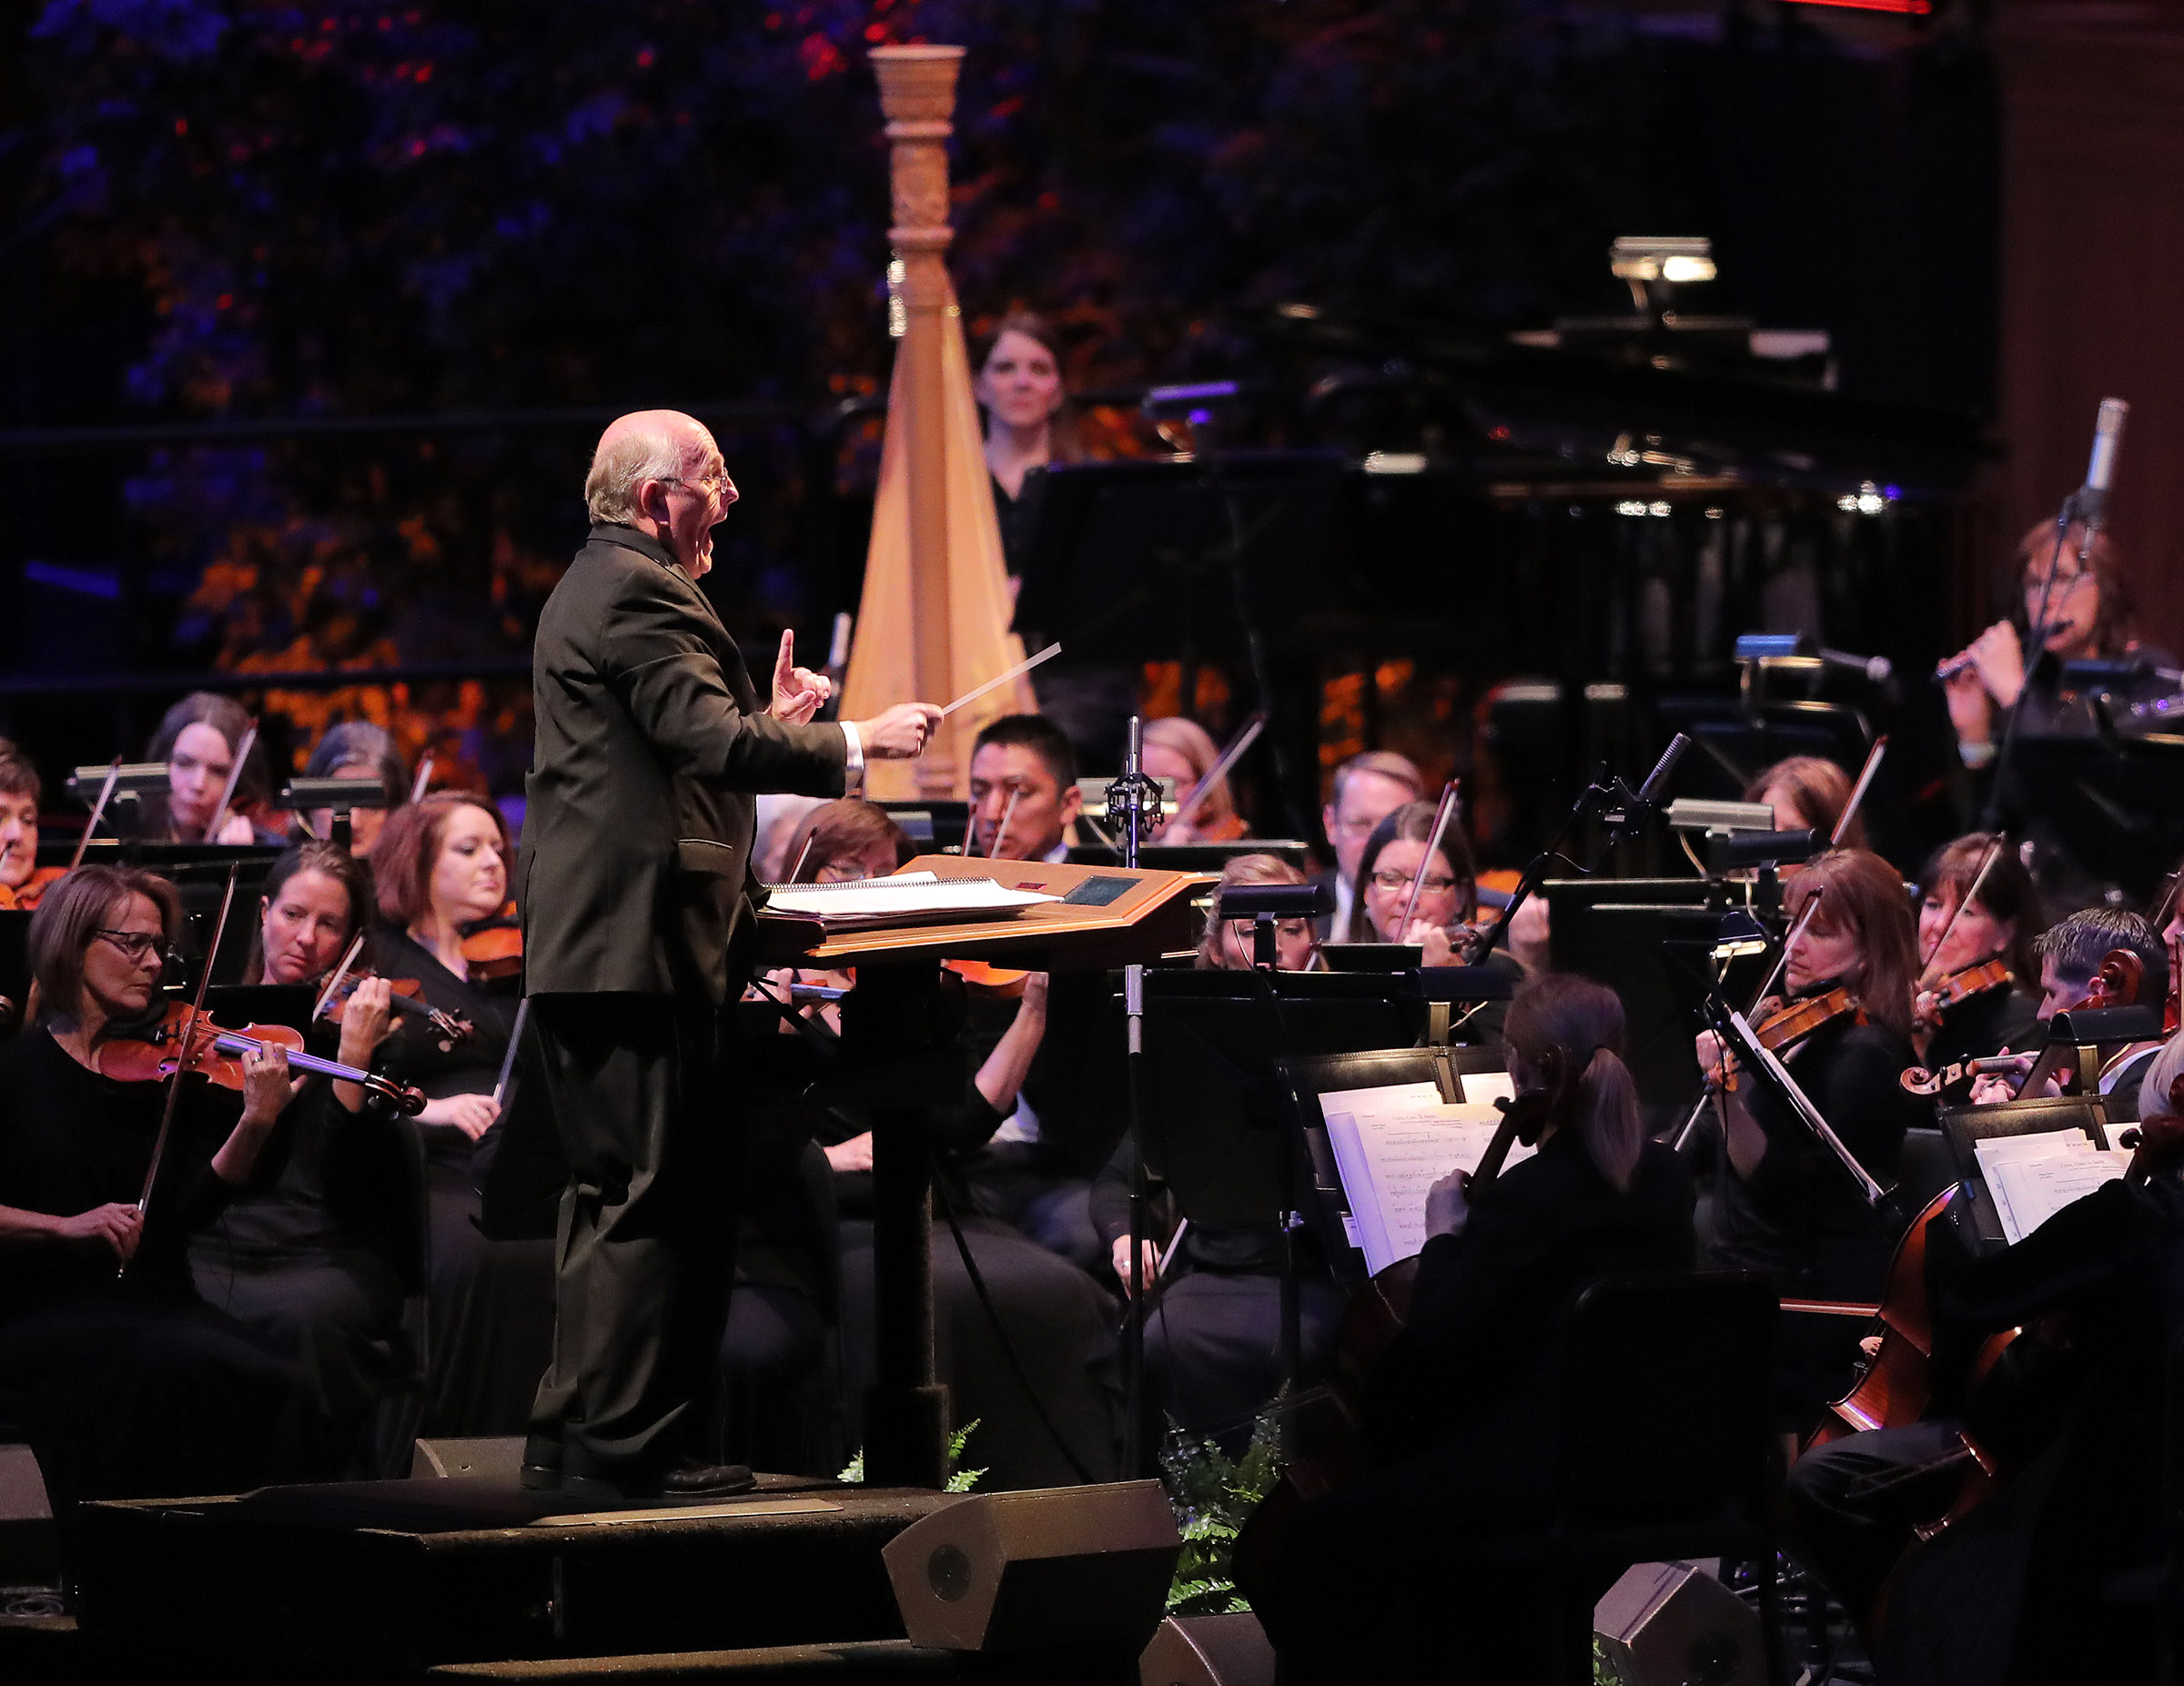 """Mack Wilberg conducts the Mormon Tabernacle Choir and Orchestra at Temple Square in their annual Pioneer Concert, with guest performers Matthew Morrison, Laura Michelle Kelly and narrator Oscar """"Andy"""" Hammerstein III, at the Conference Center in Salt Lake on Friday, July 20, 2018."""